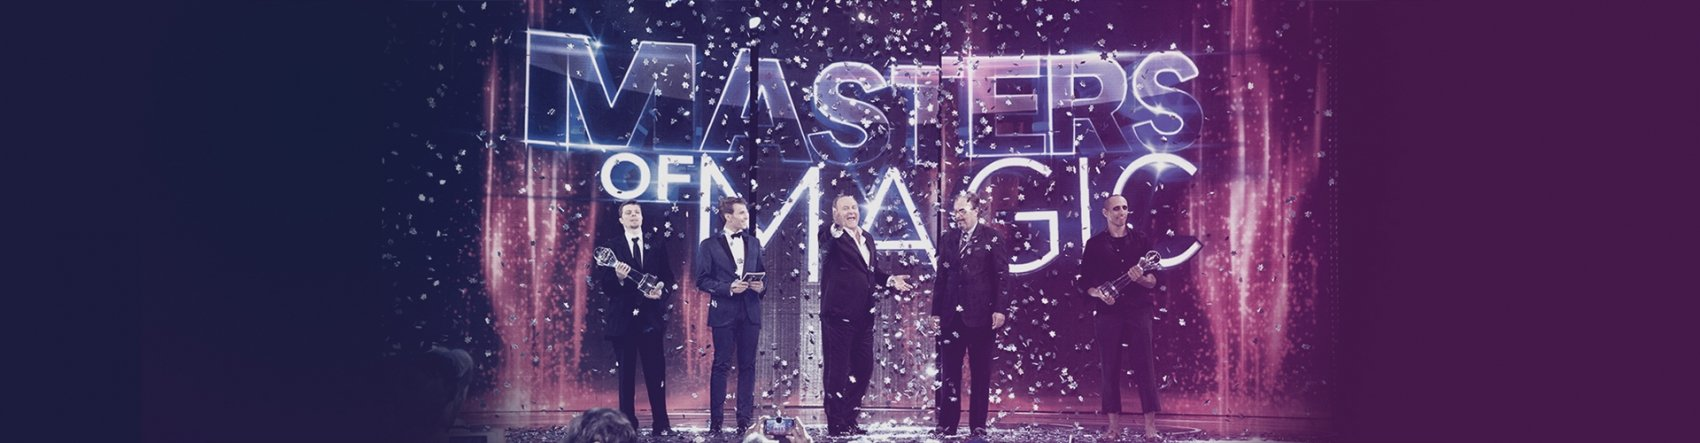 Masters of Magic 2016